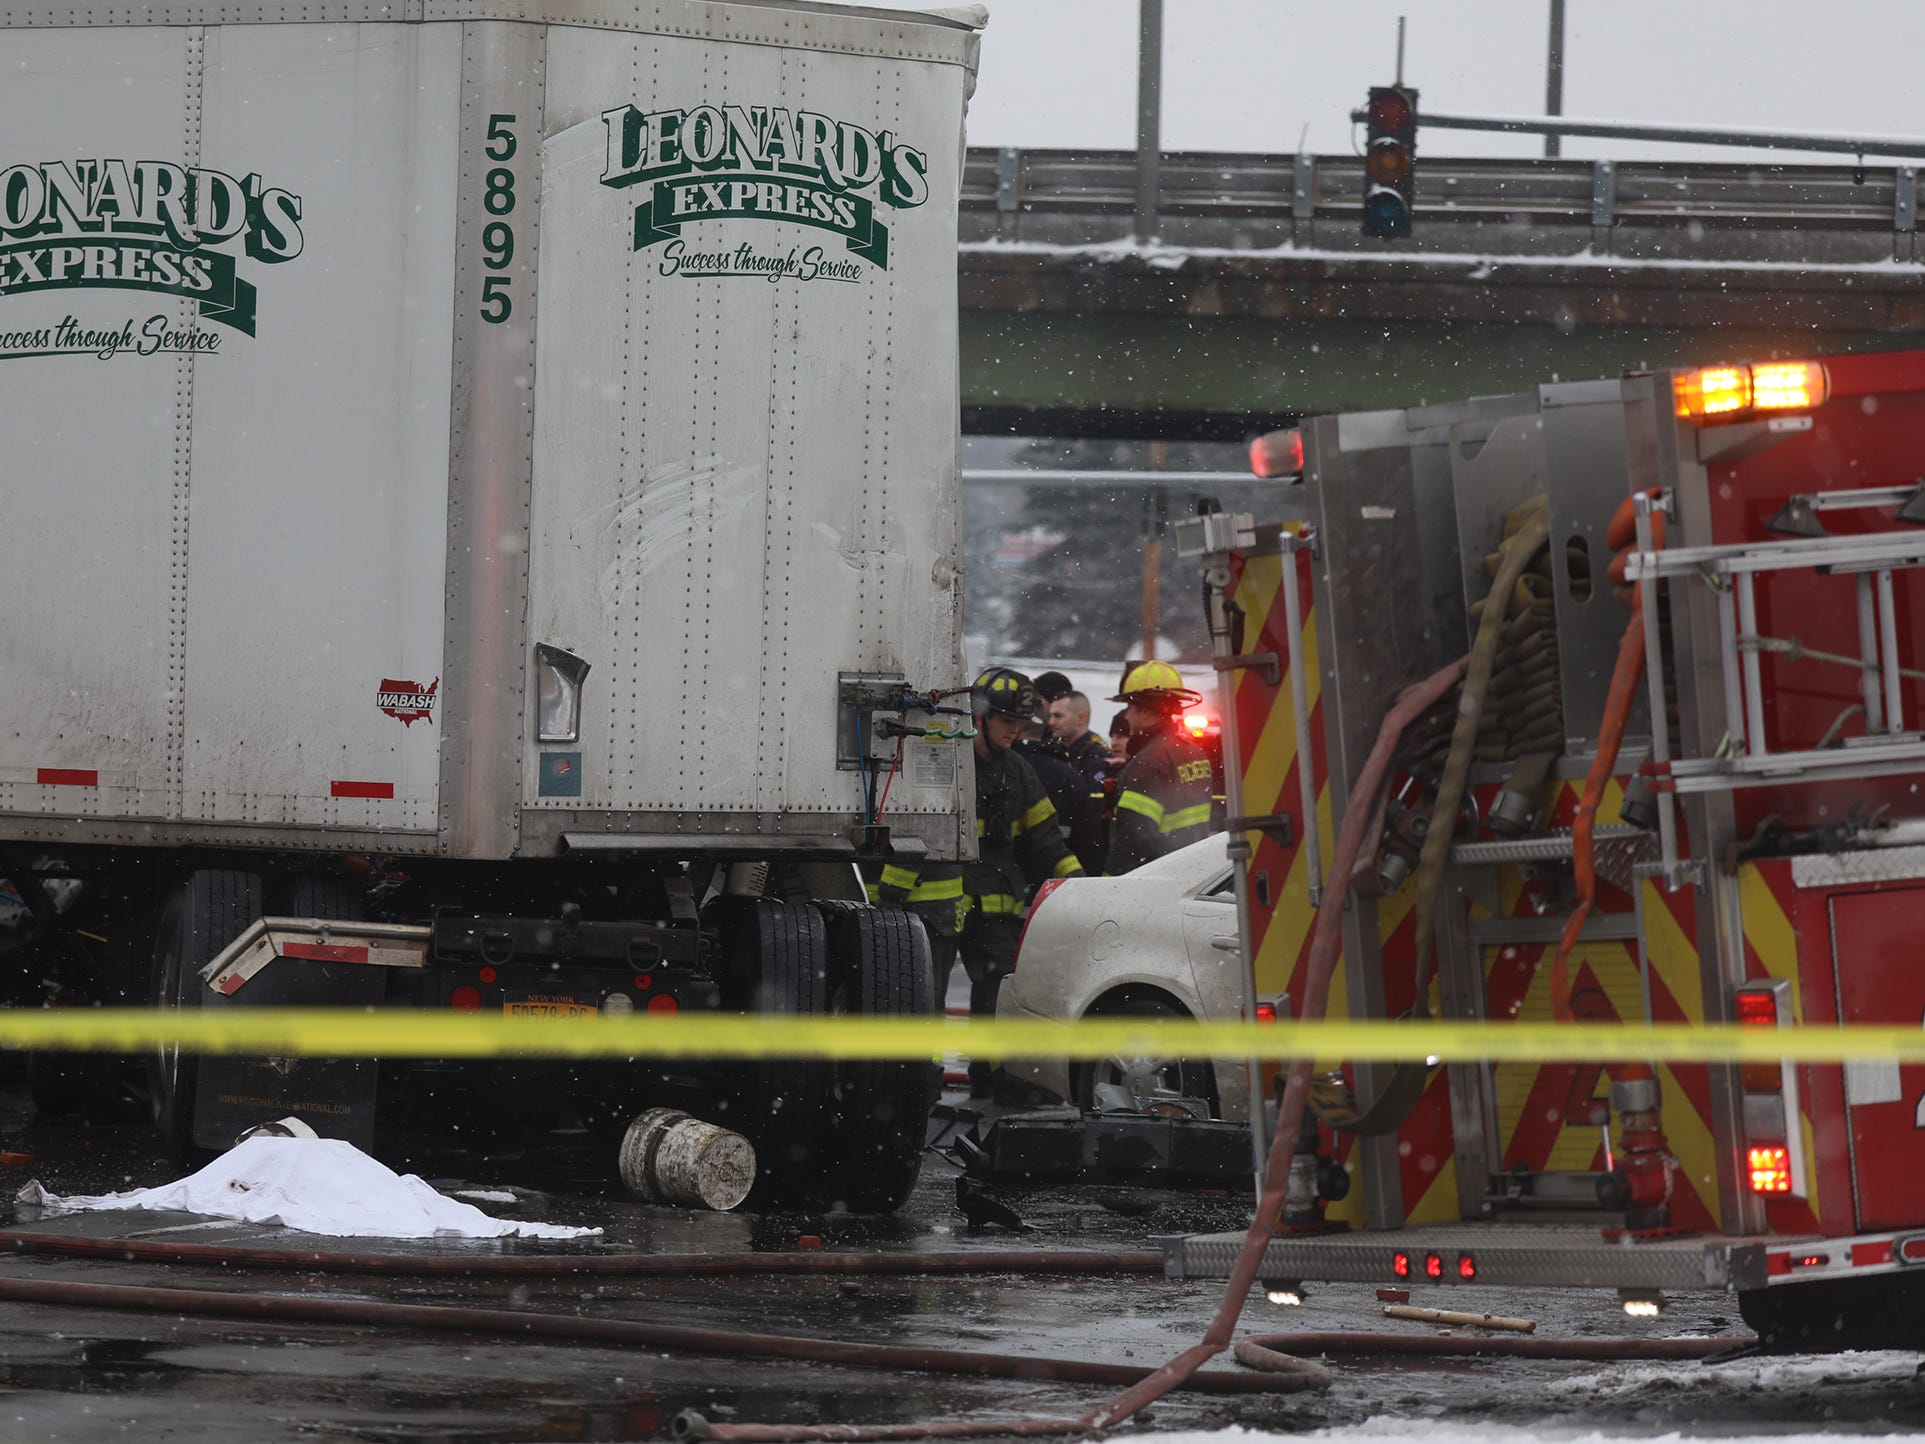 The tracctor trailer driver died on the scene.